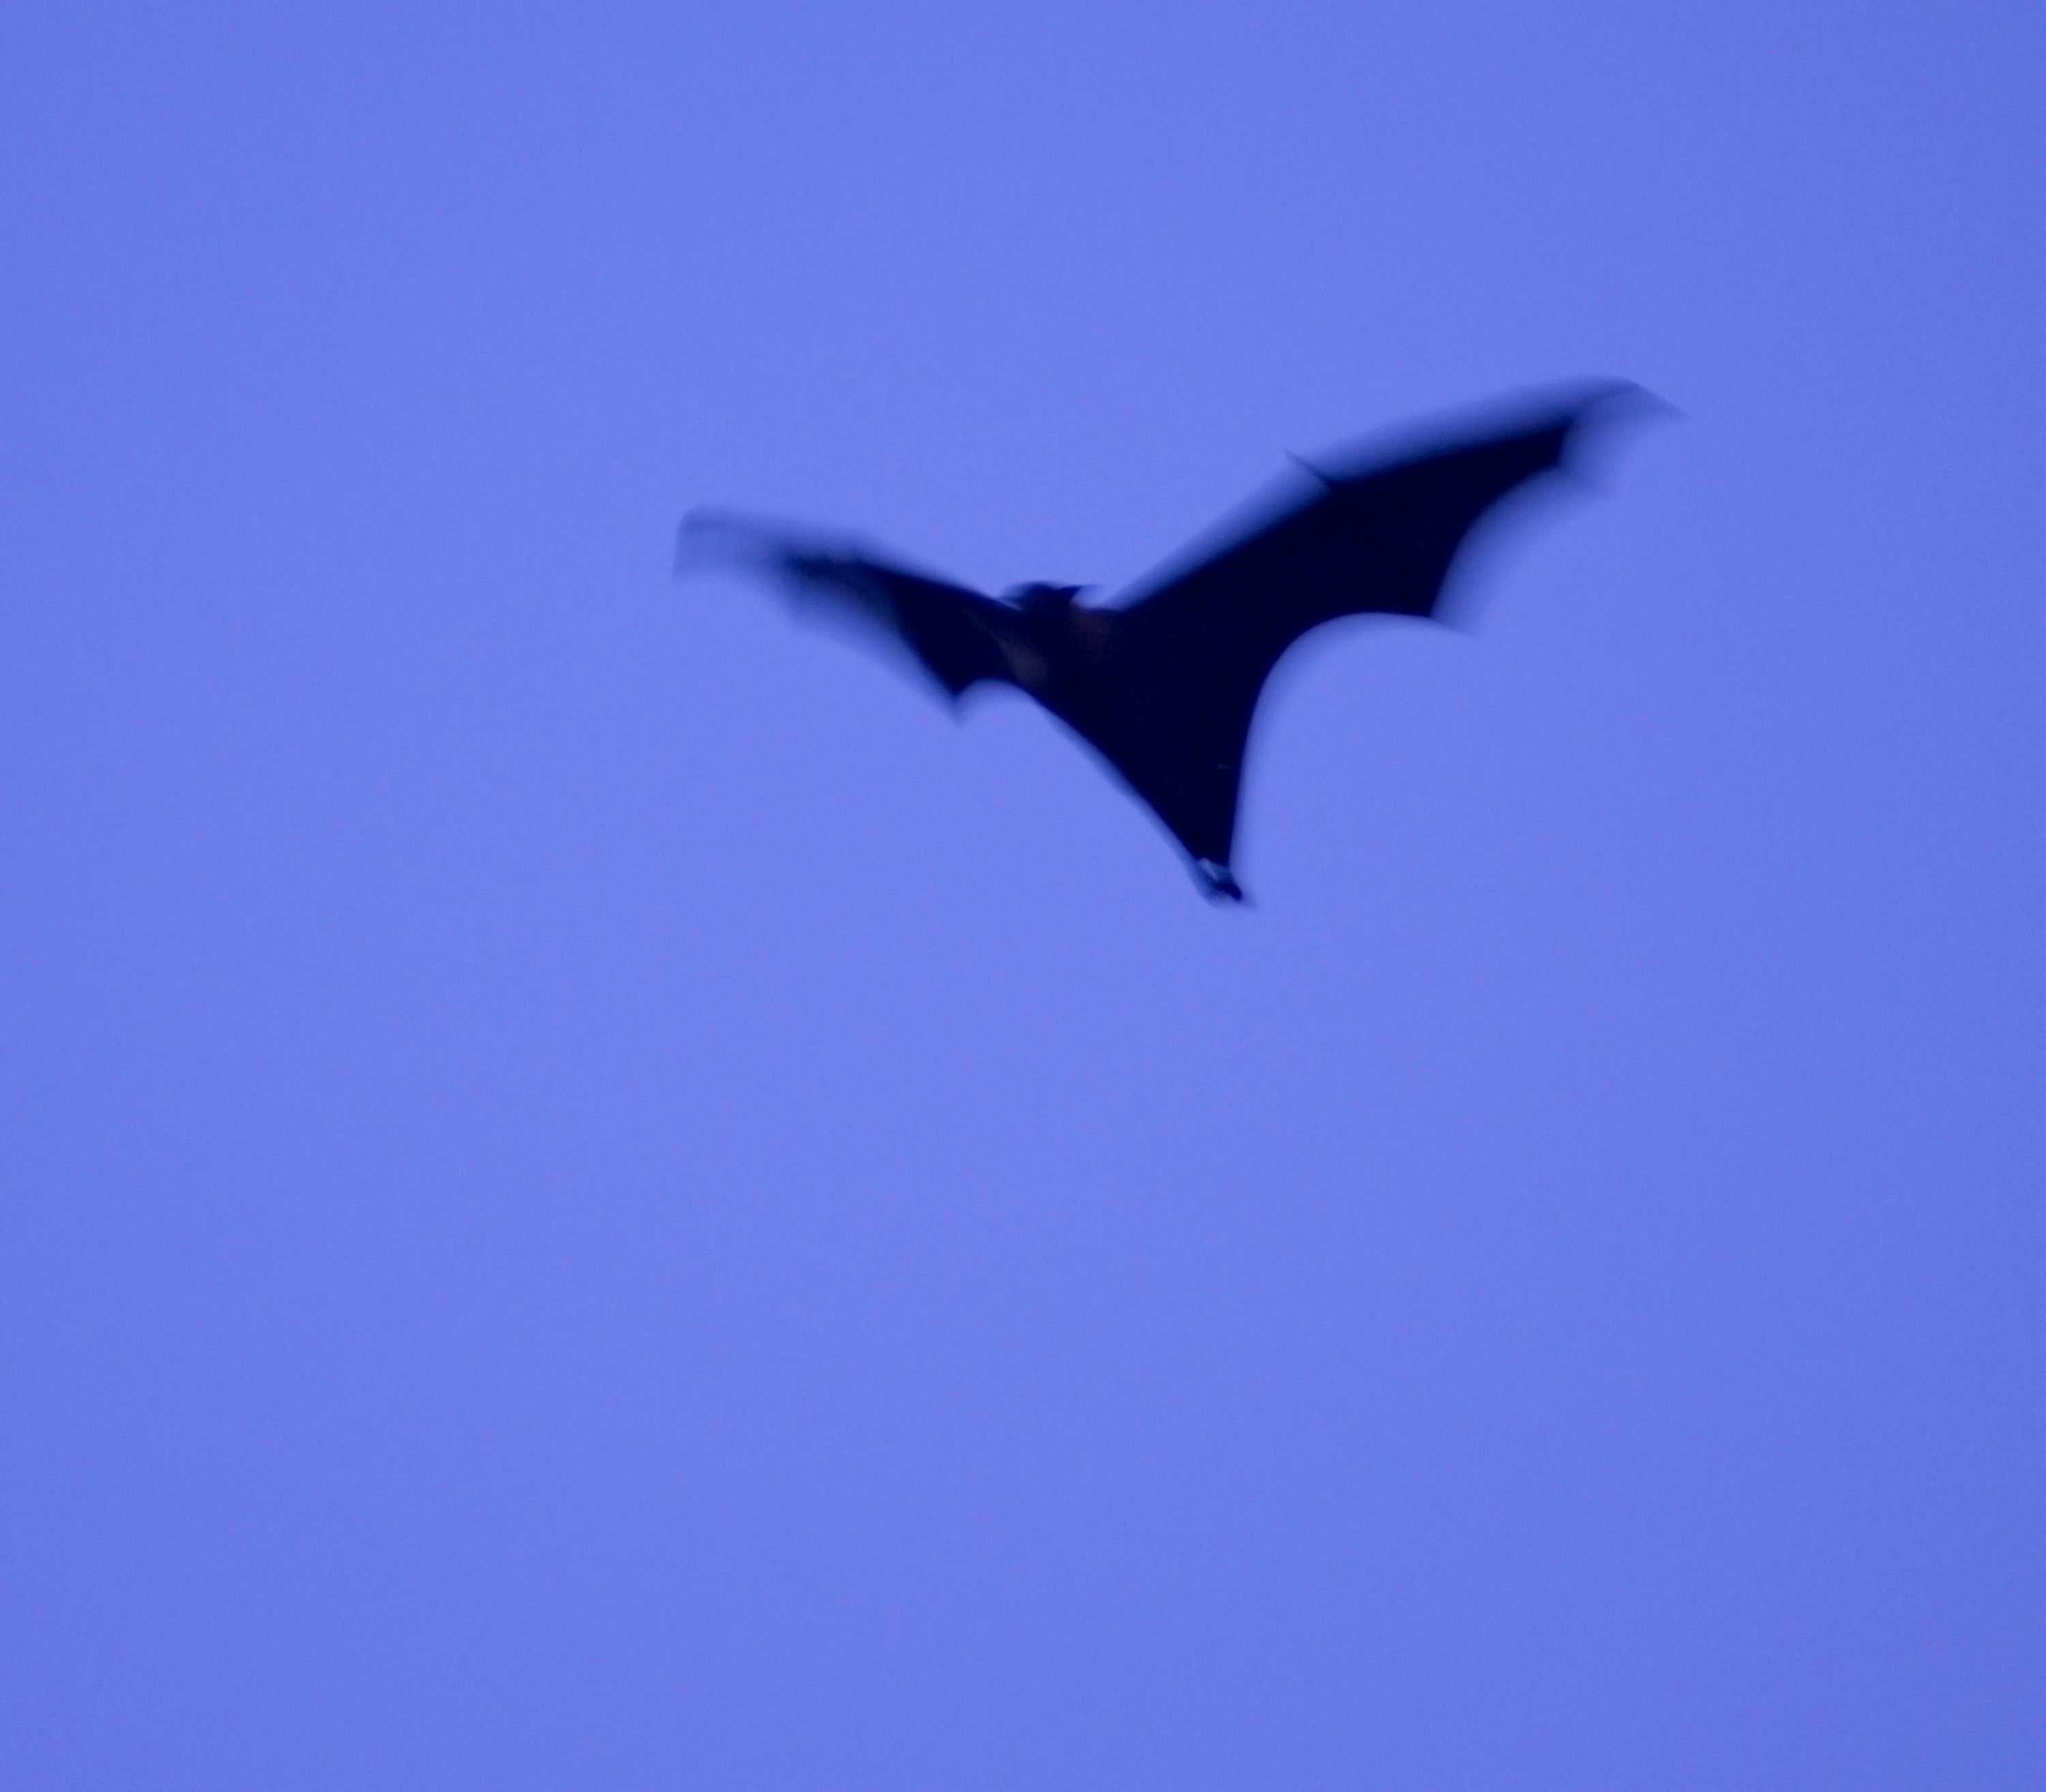 flying black bat with motion blur as it flaps its wings in the dusk sky